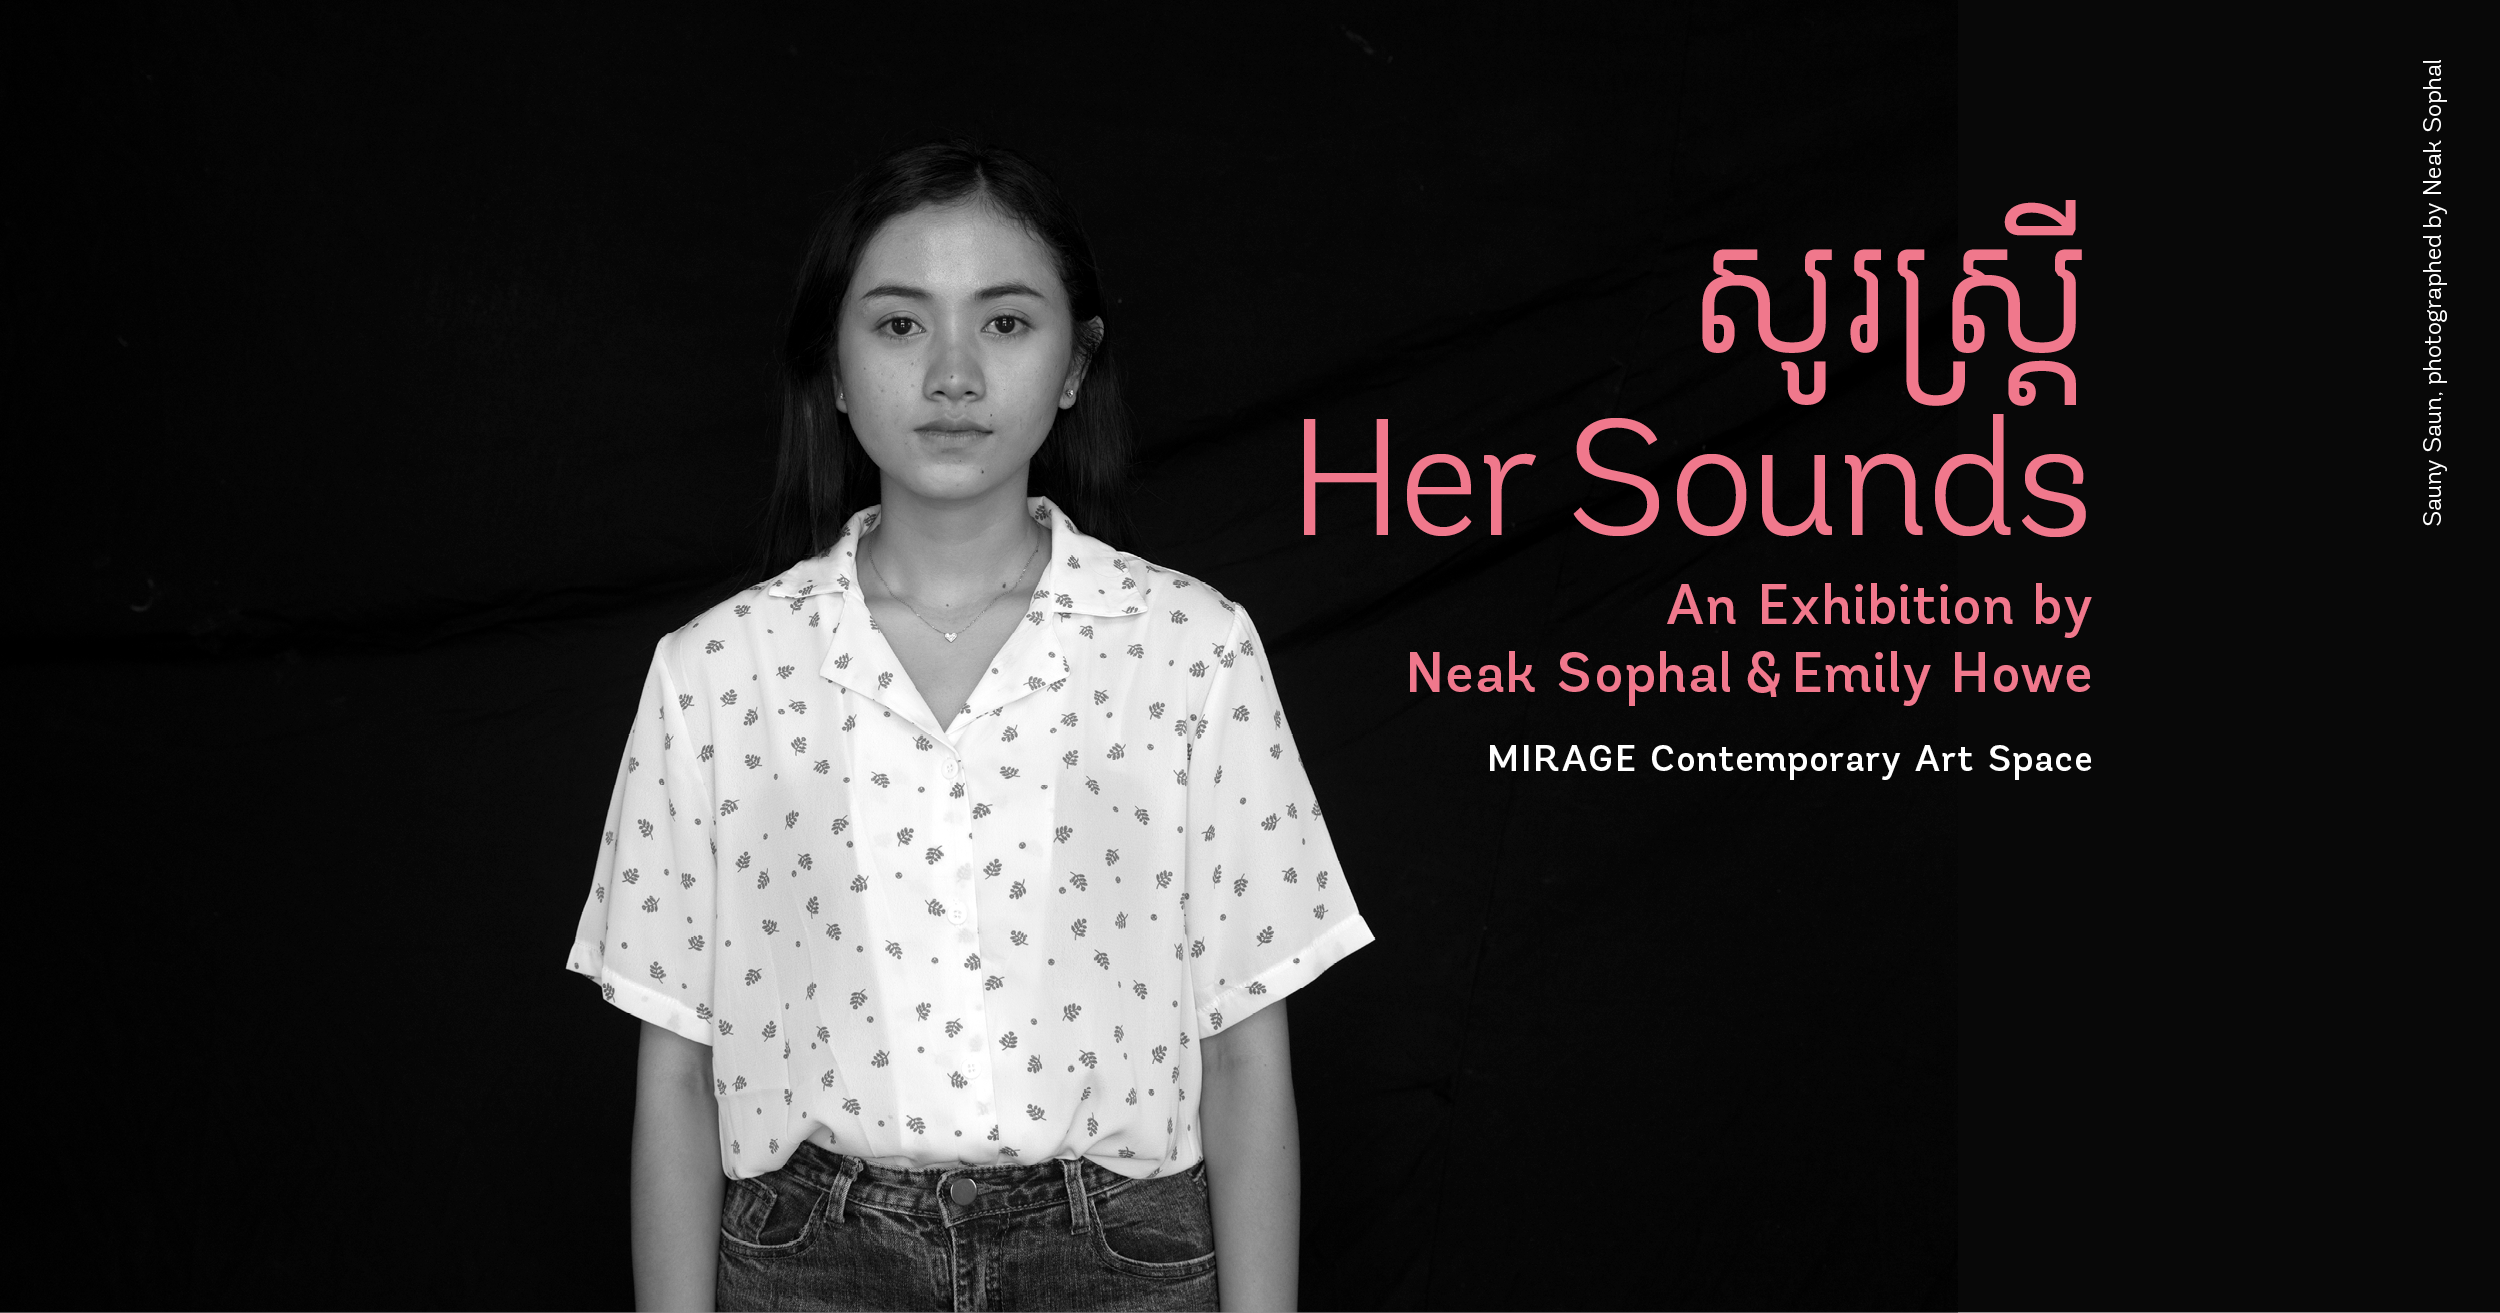 Neak Sophal and Emily Howe at MIRAGE Contemporary Art Space in Siem Reap, Cambodia